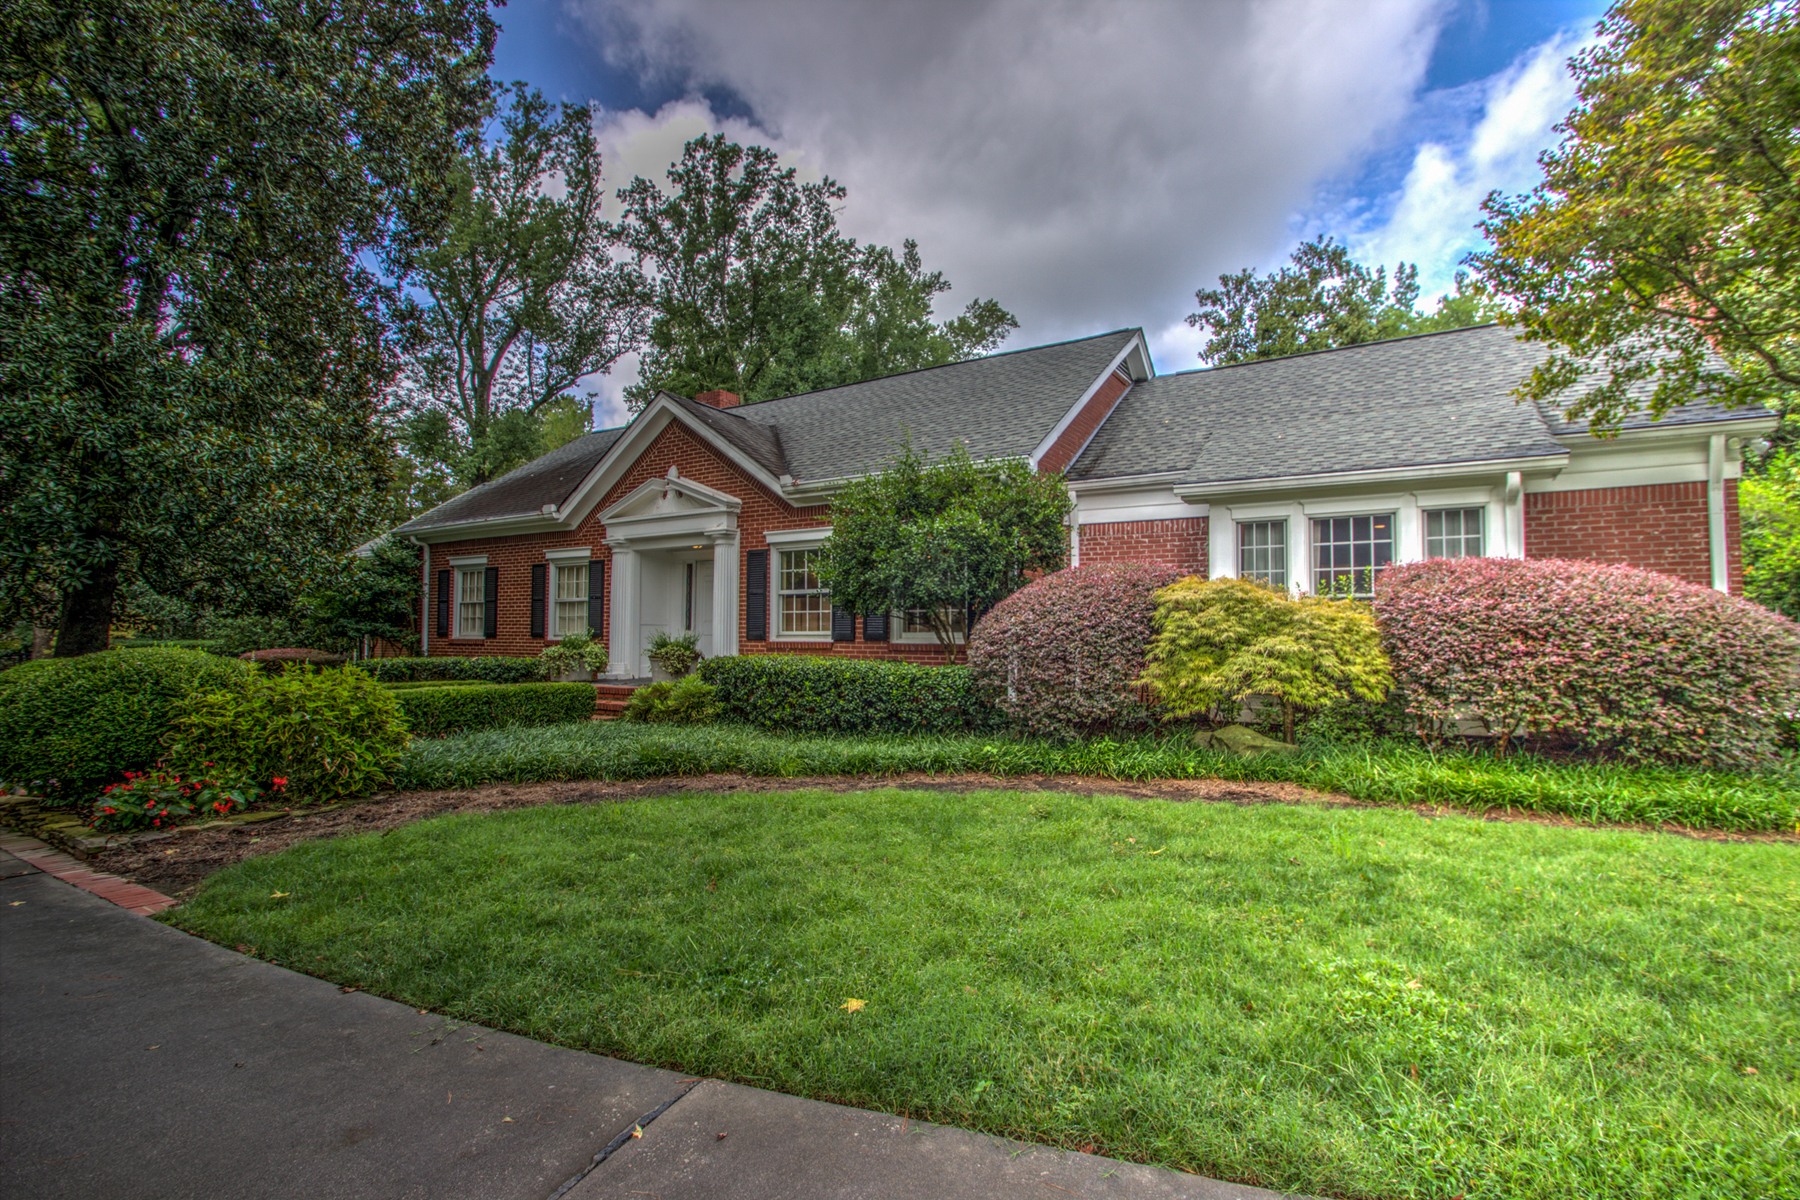 Property For Sale at Inviting Home On Tranquil, Private Lot In Buckhead